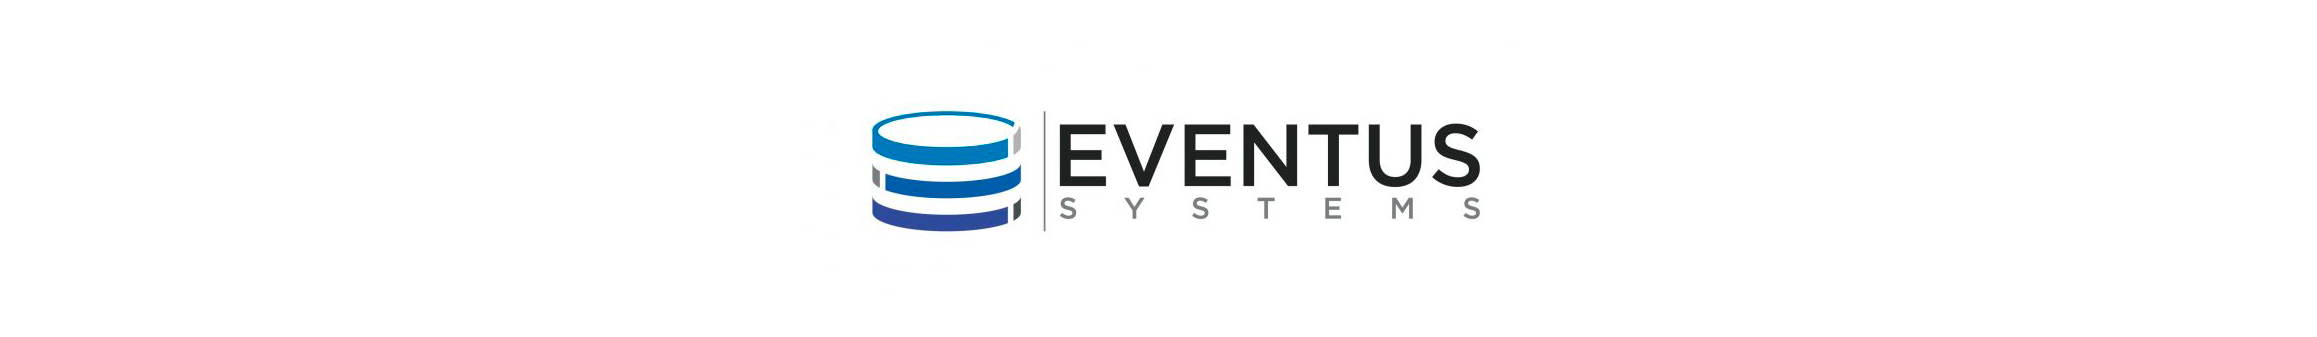 Eventus Systems wins Best Sell-Side Market Surveillance Product in WatersTechnology's 2021 Sell-Side Technology Awards